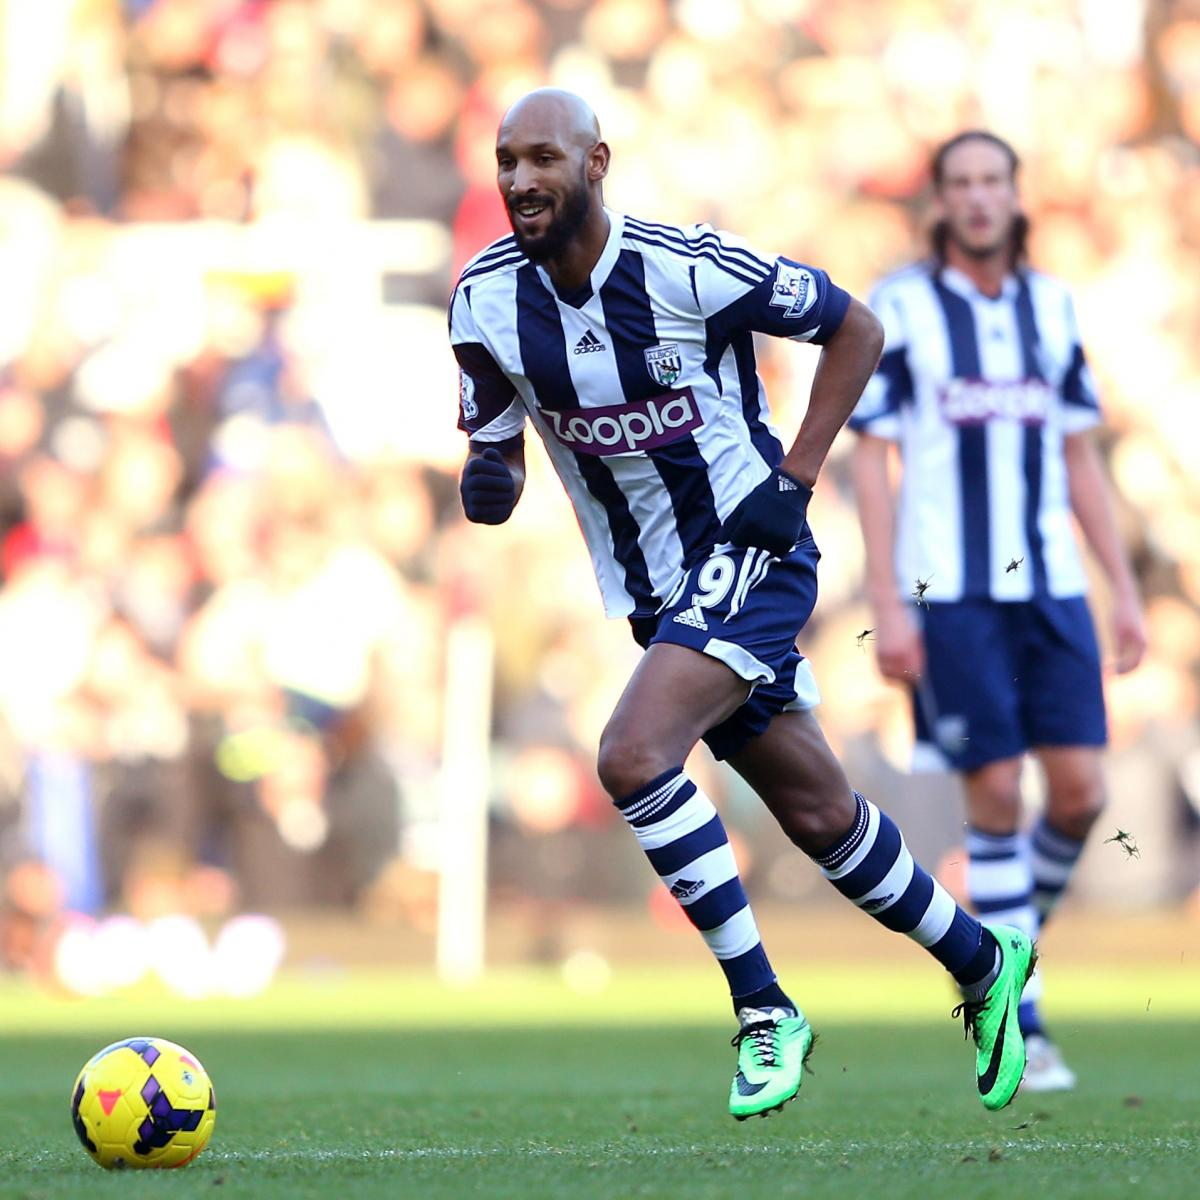 Nicolas Anelka To Mumbai City FC: Latest Transfer Details